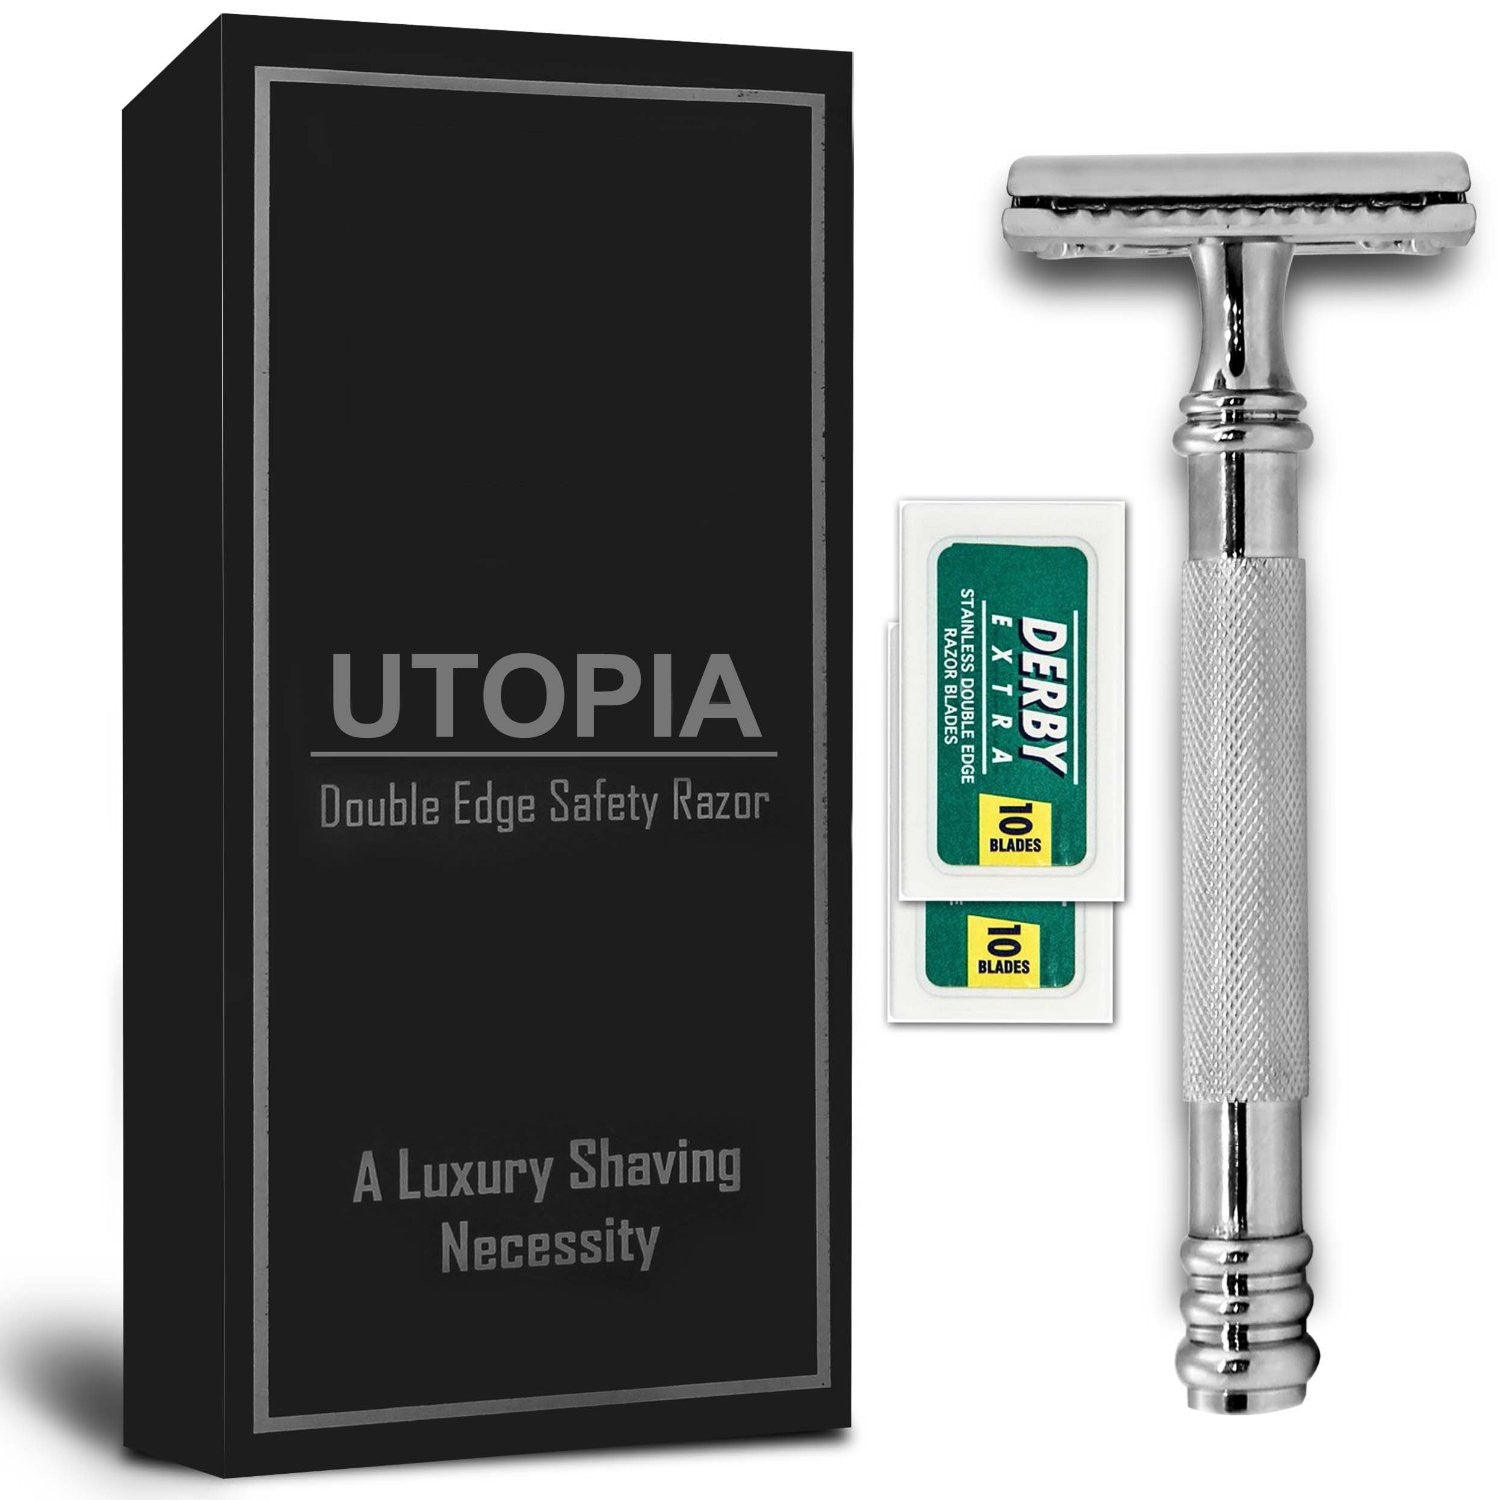 Double Edge Safety Razor with 20 Derby Blades